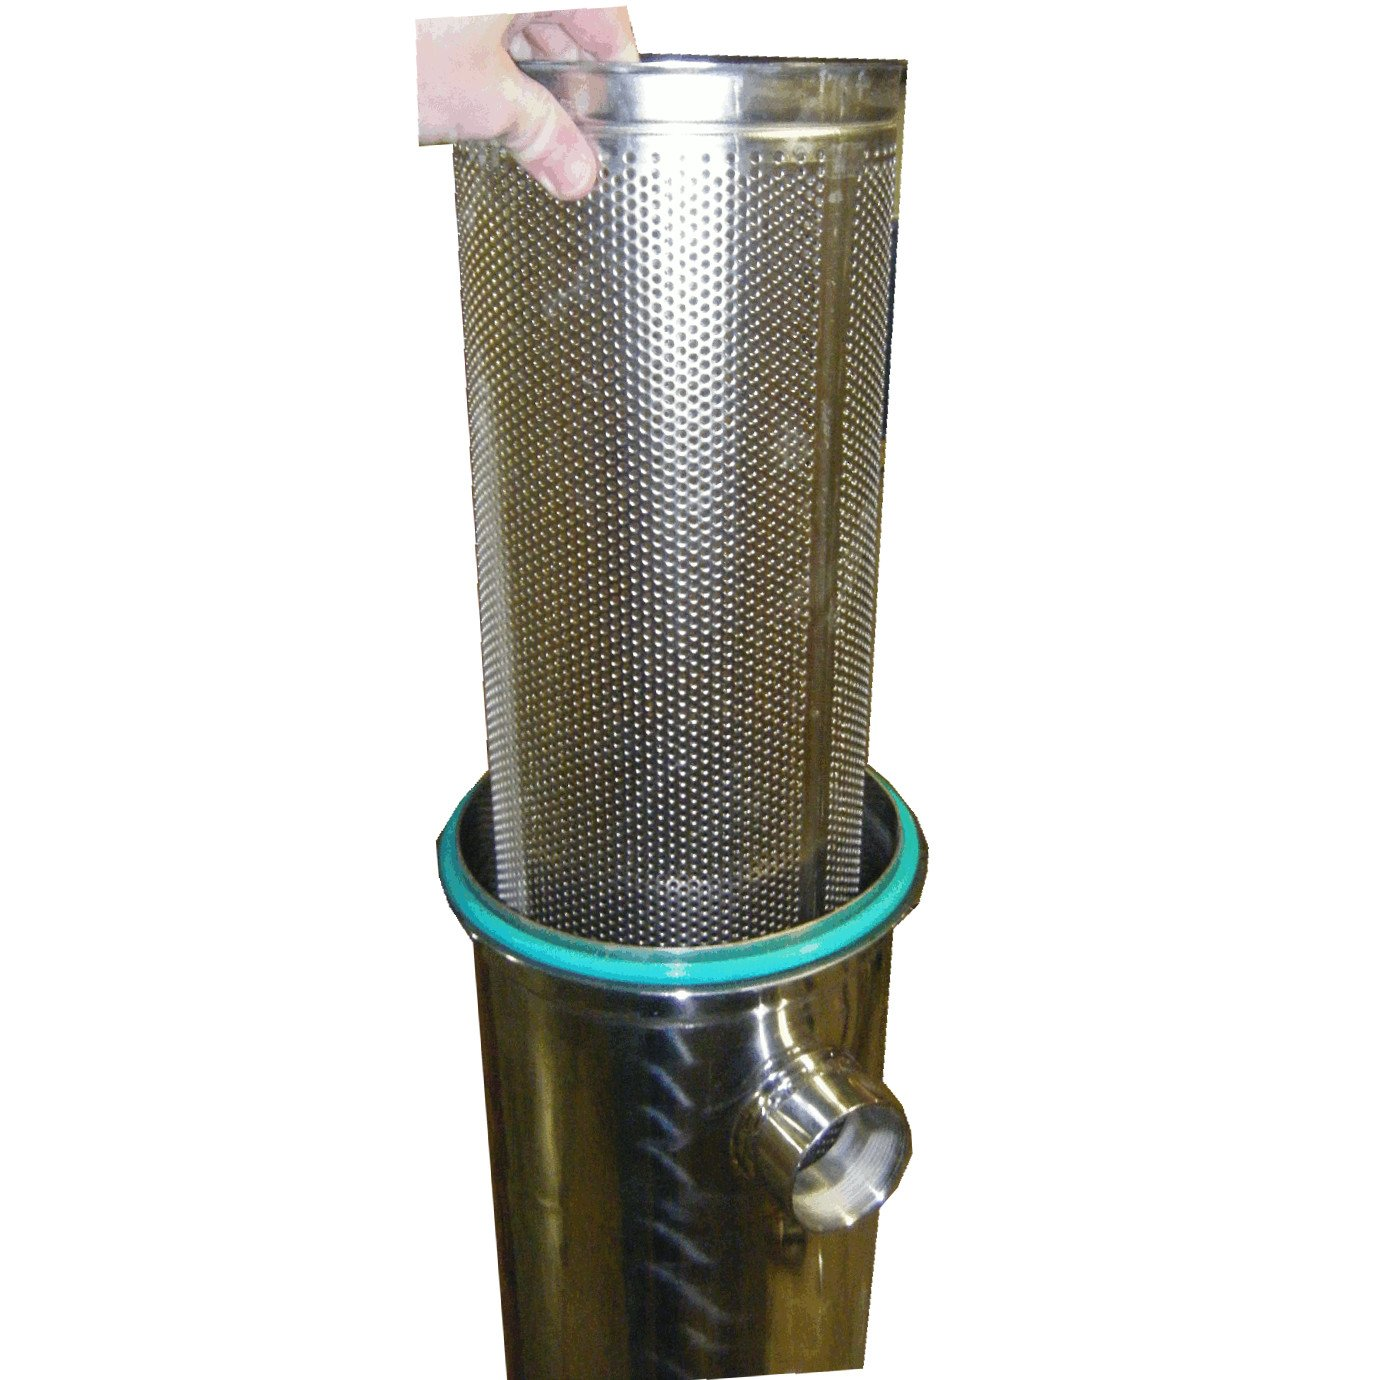 PRM Bag Filter HOUSING; #2 Size; 304 SS; 2 NPT in//Out; VITON O-Ring; 150 PSI MAX; Flat Plate TOP